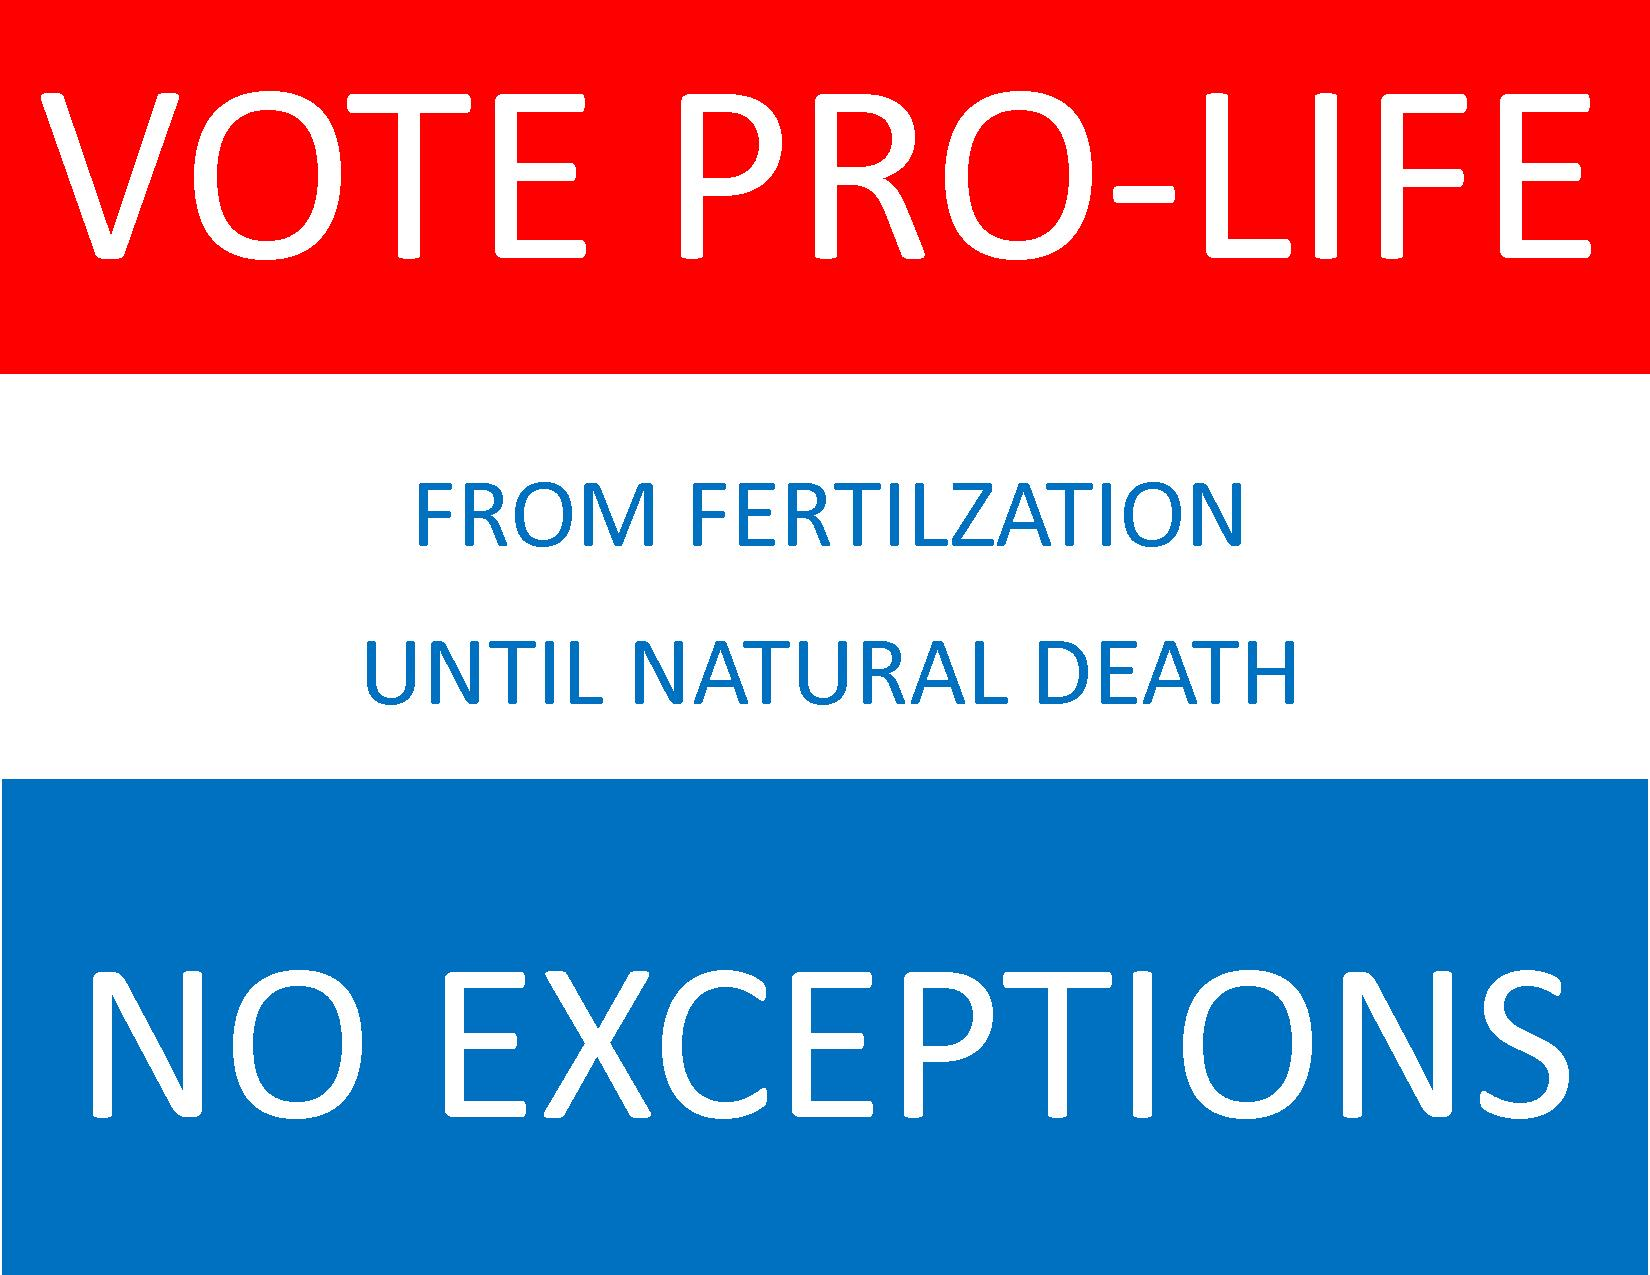 Vote prolife